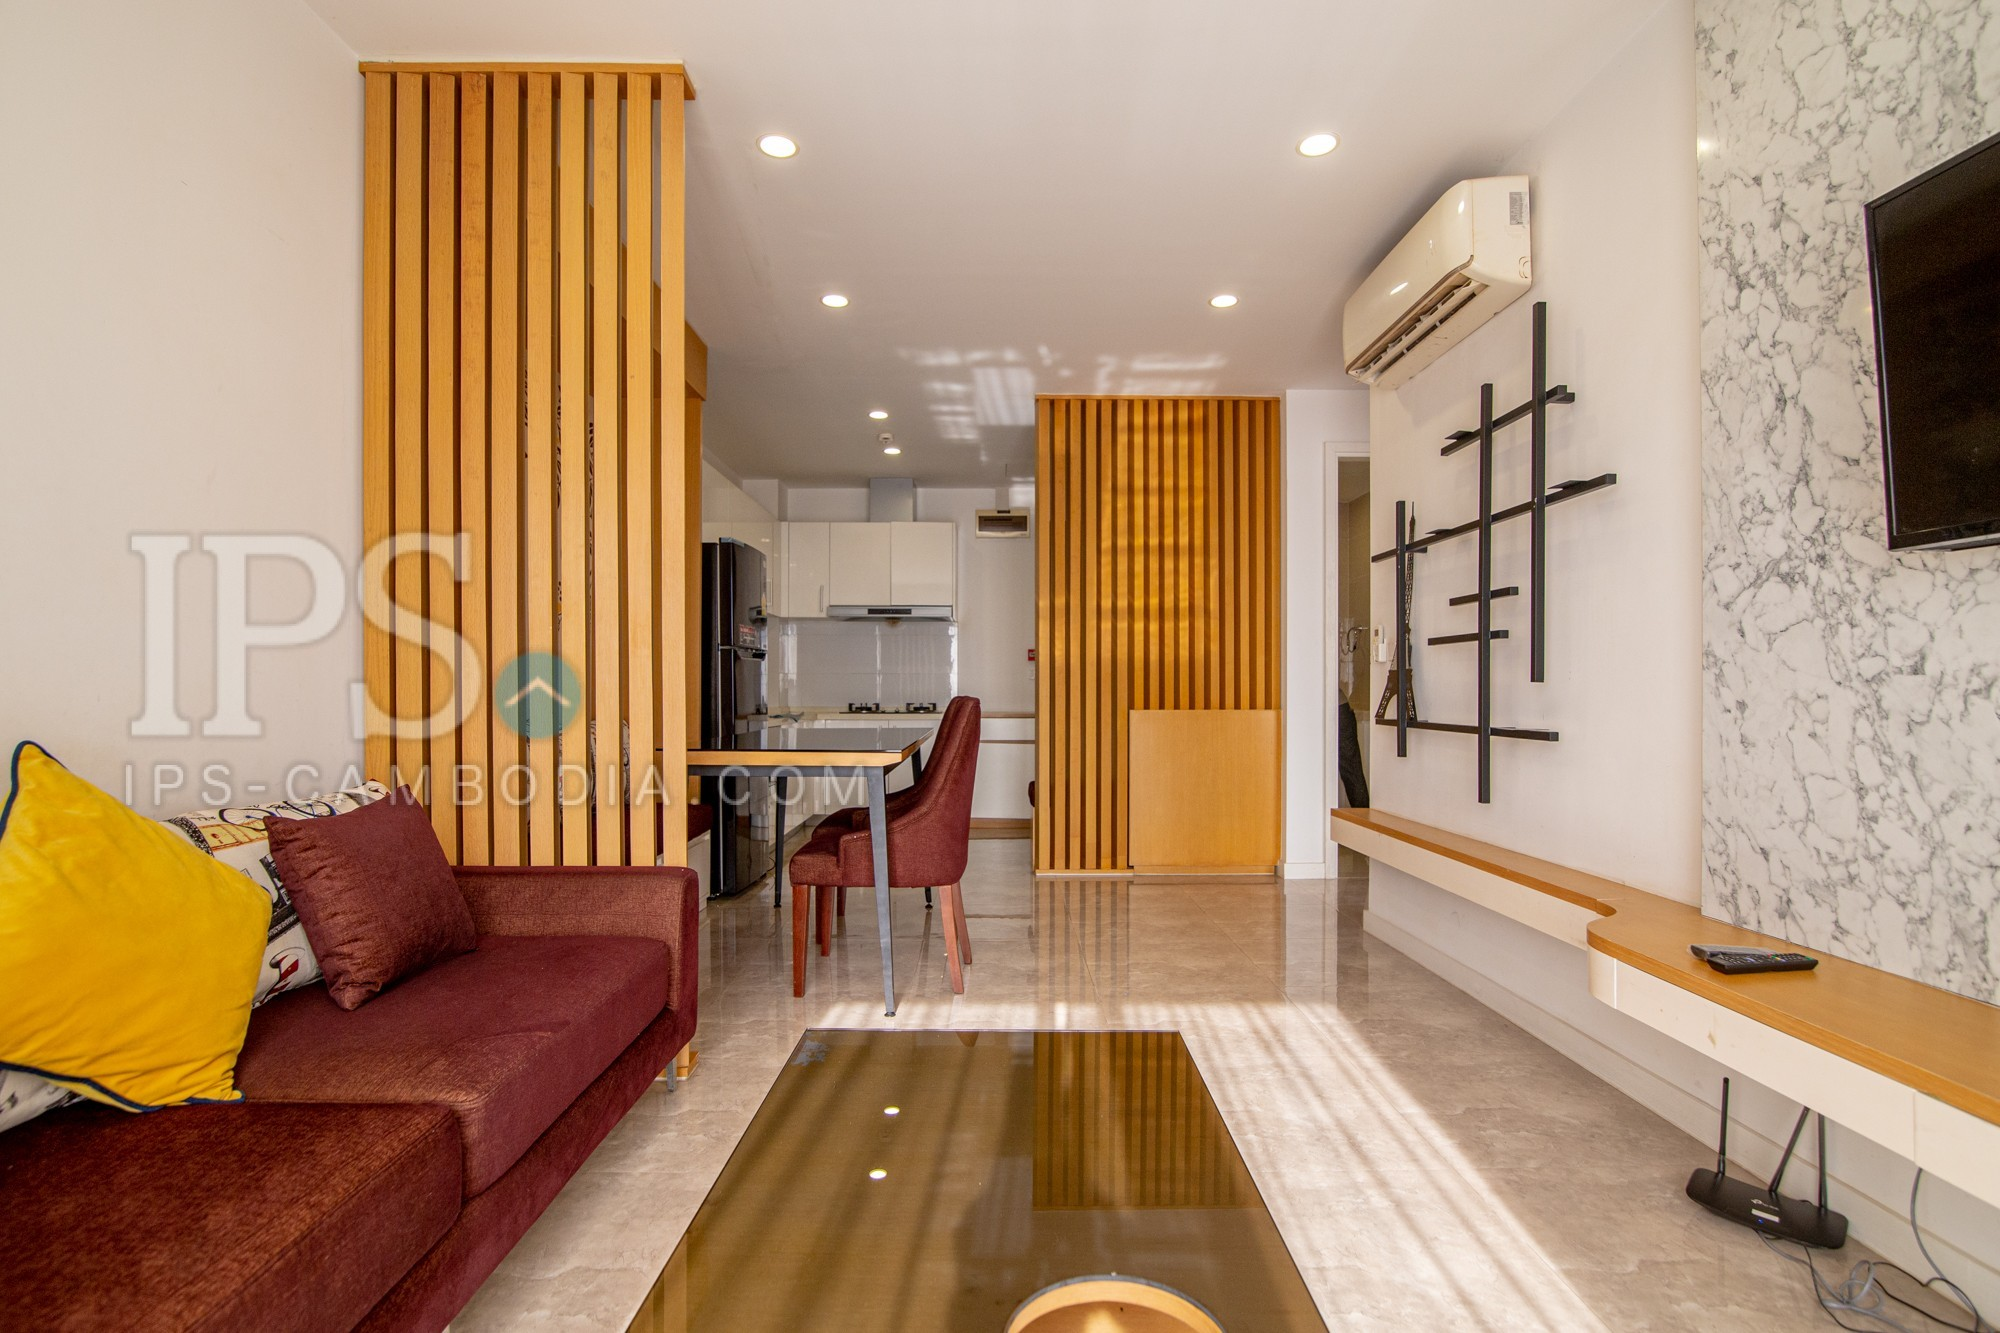 2 Bedroom Condo For Rent - Tonle Bassac, Phnom Penh